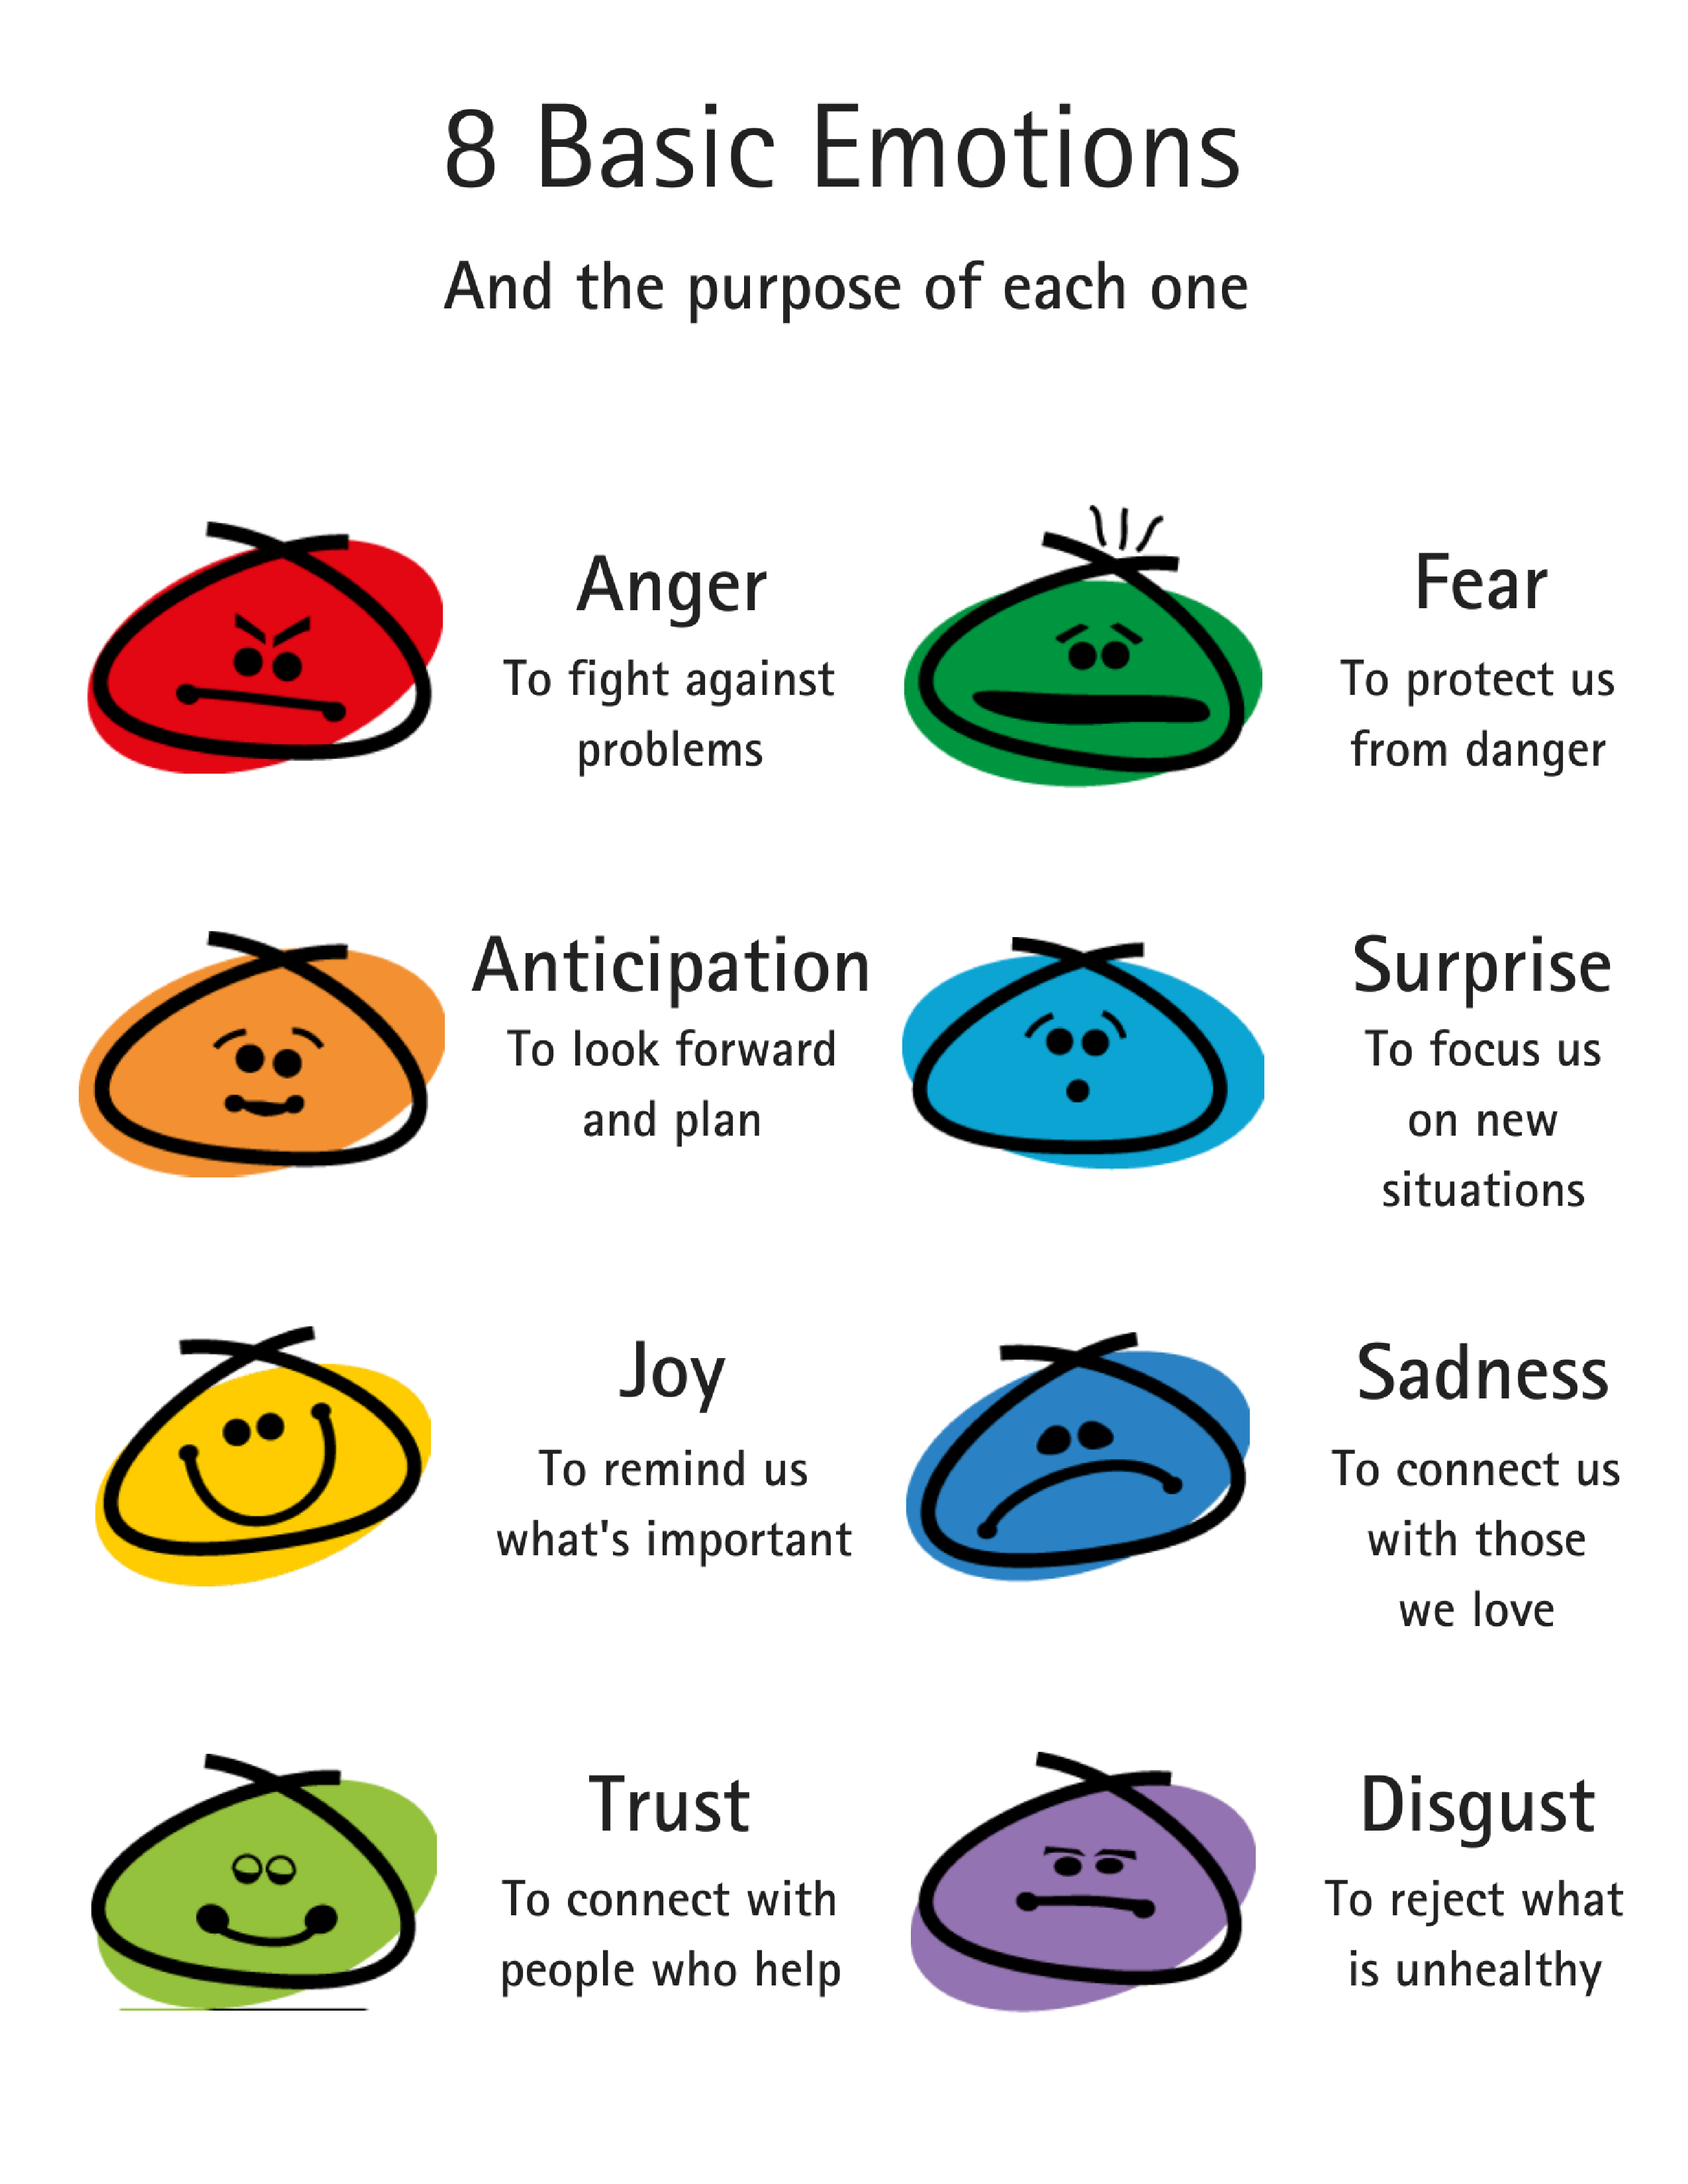 8 Basic Emotions And The Purpose Of Each One